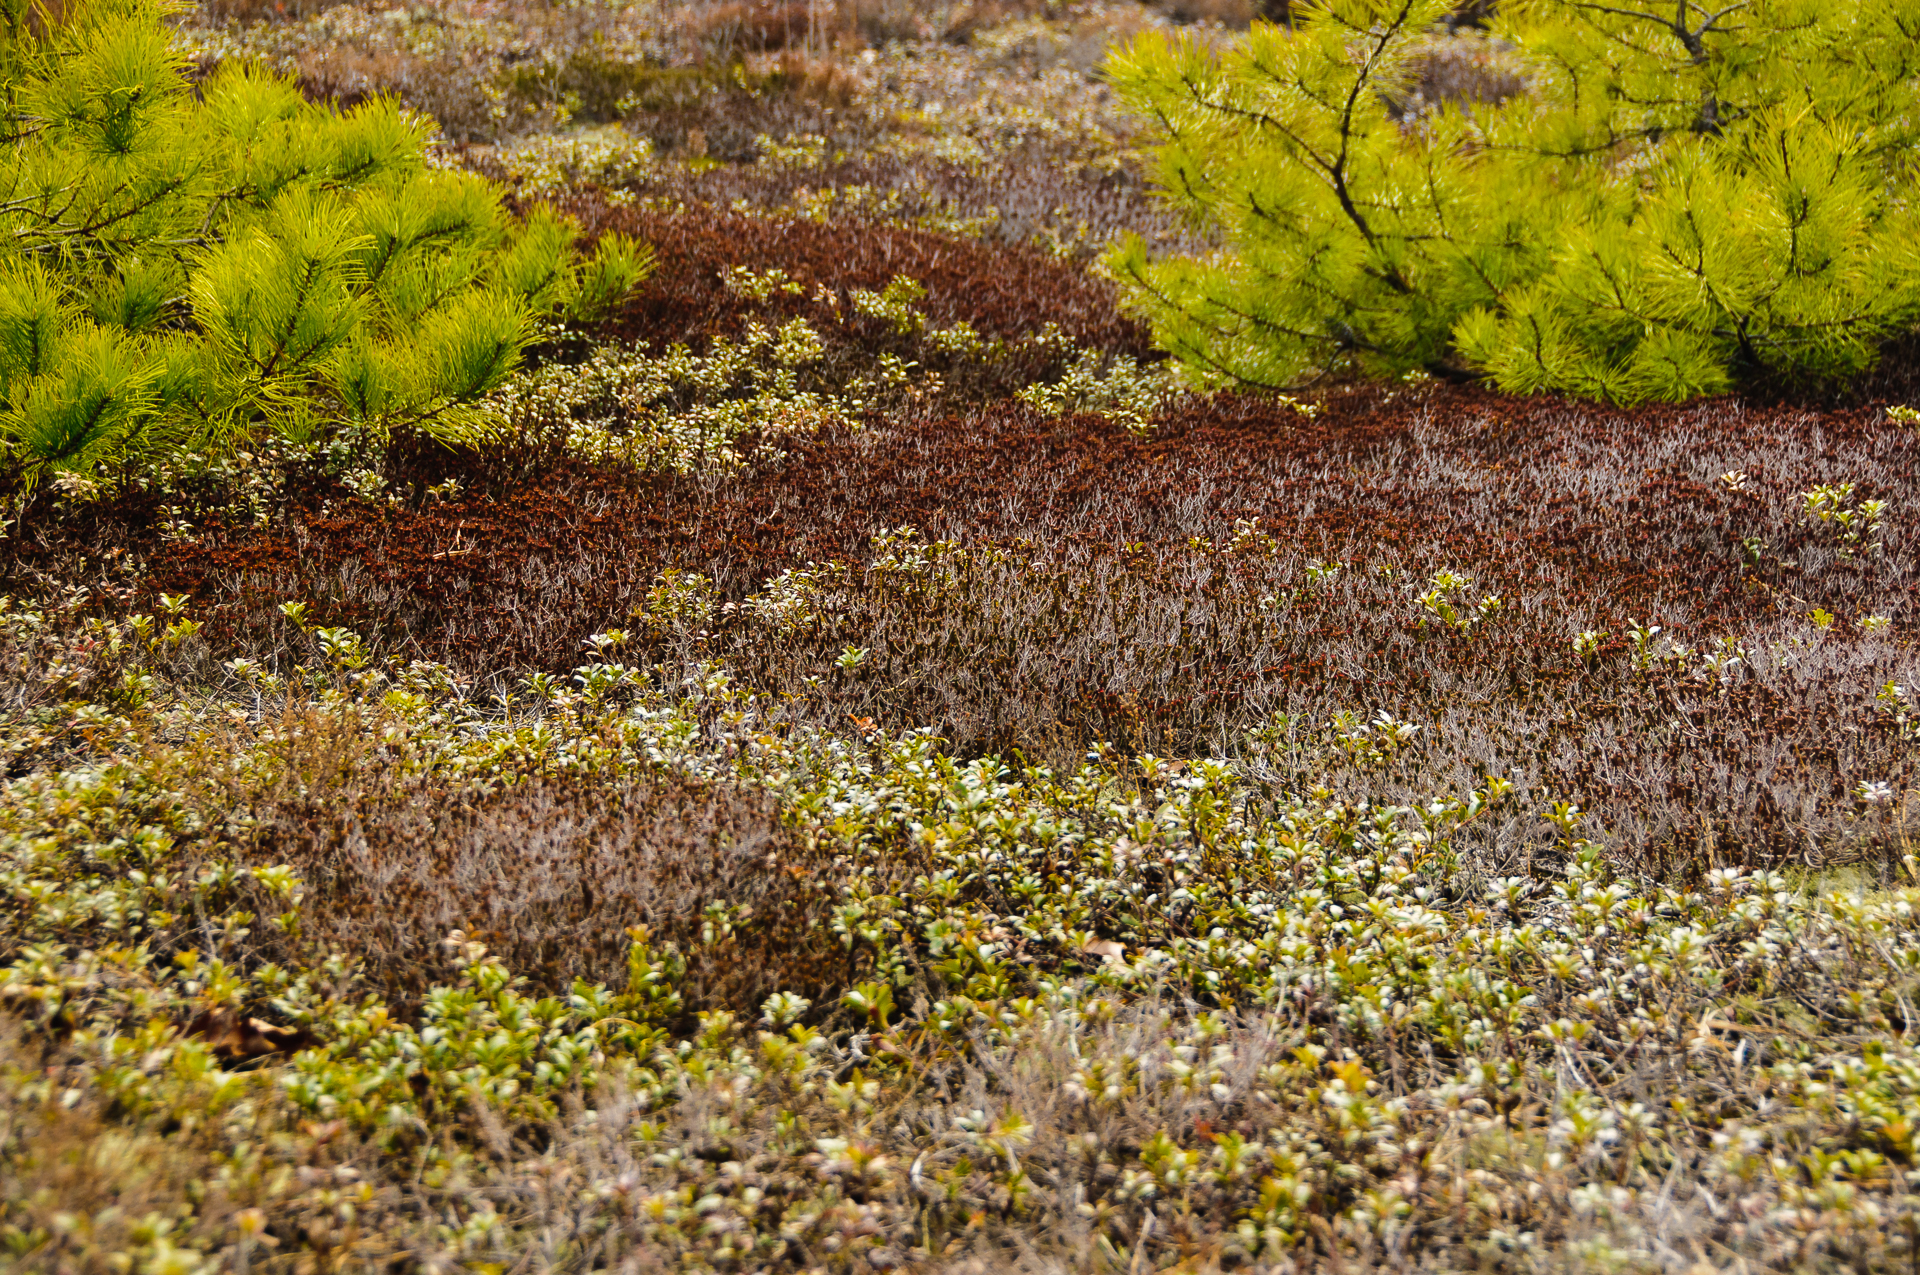 broom-crowberry-7735